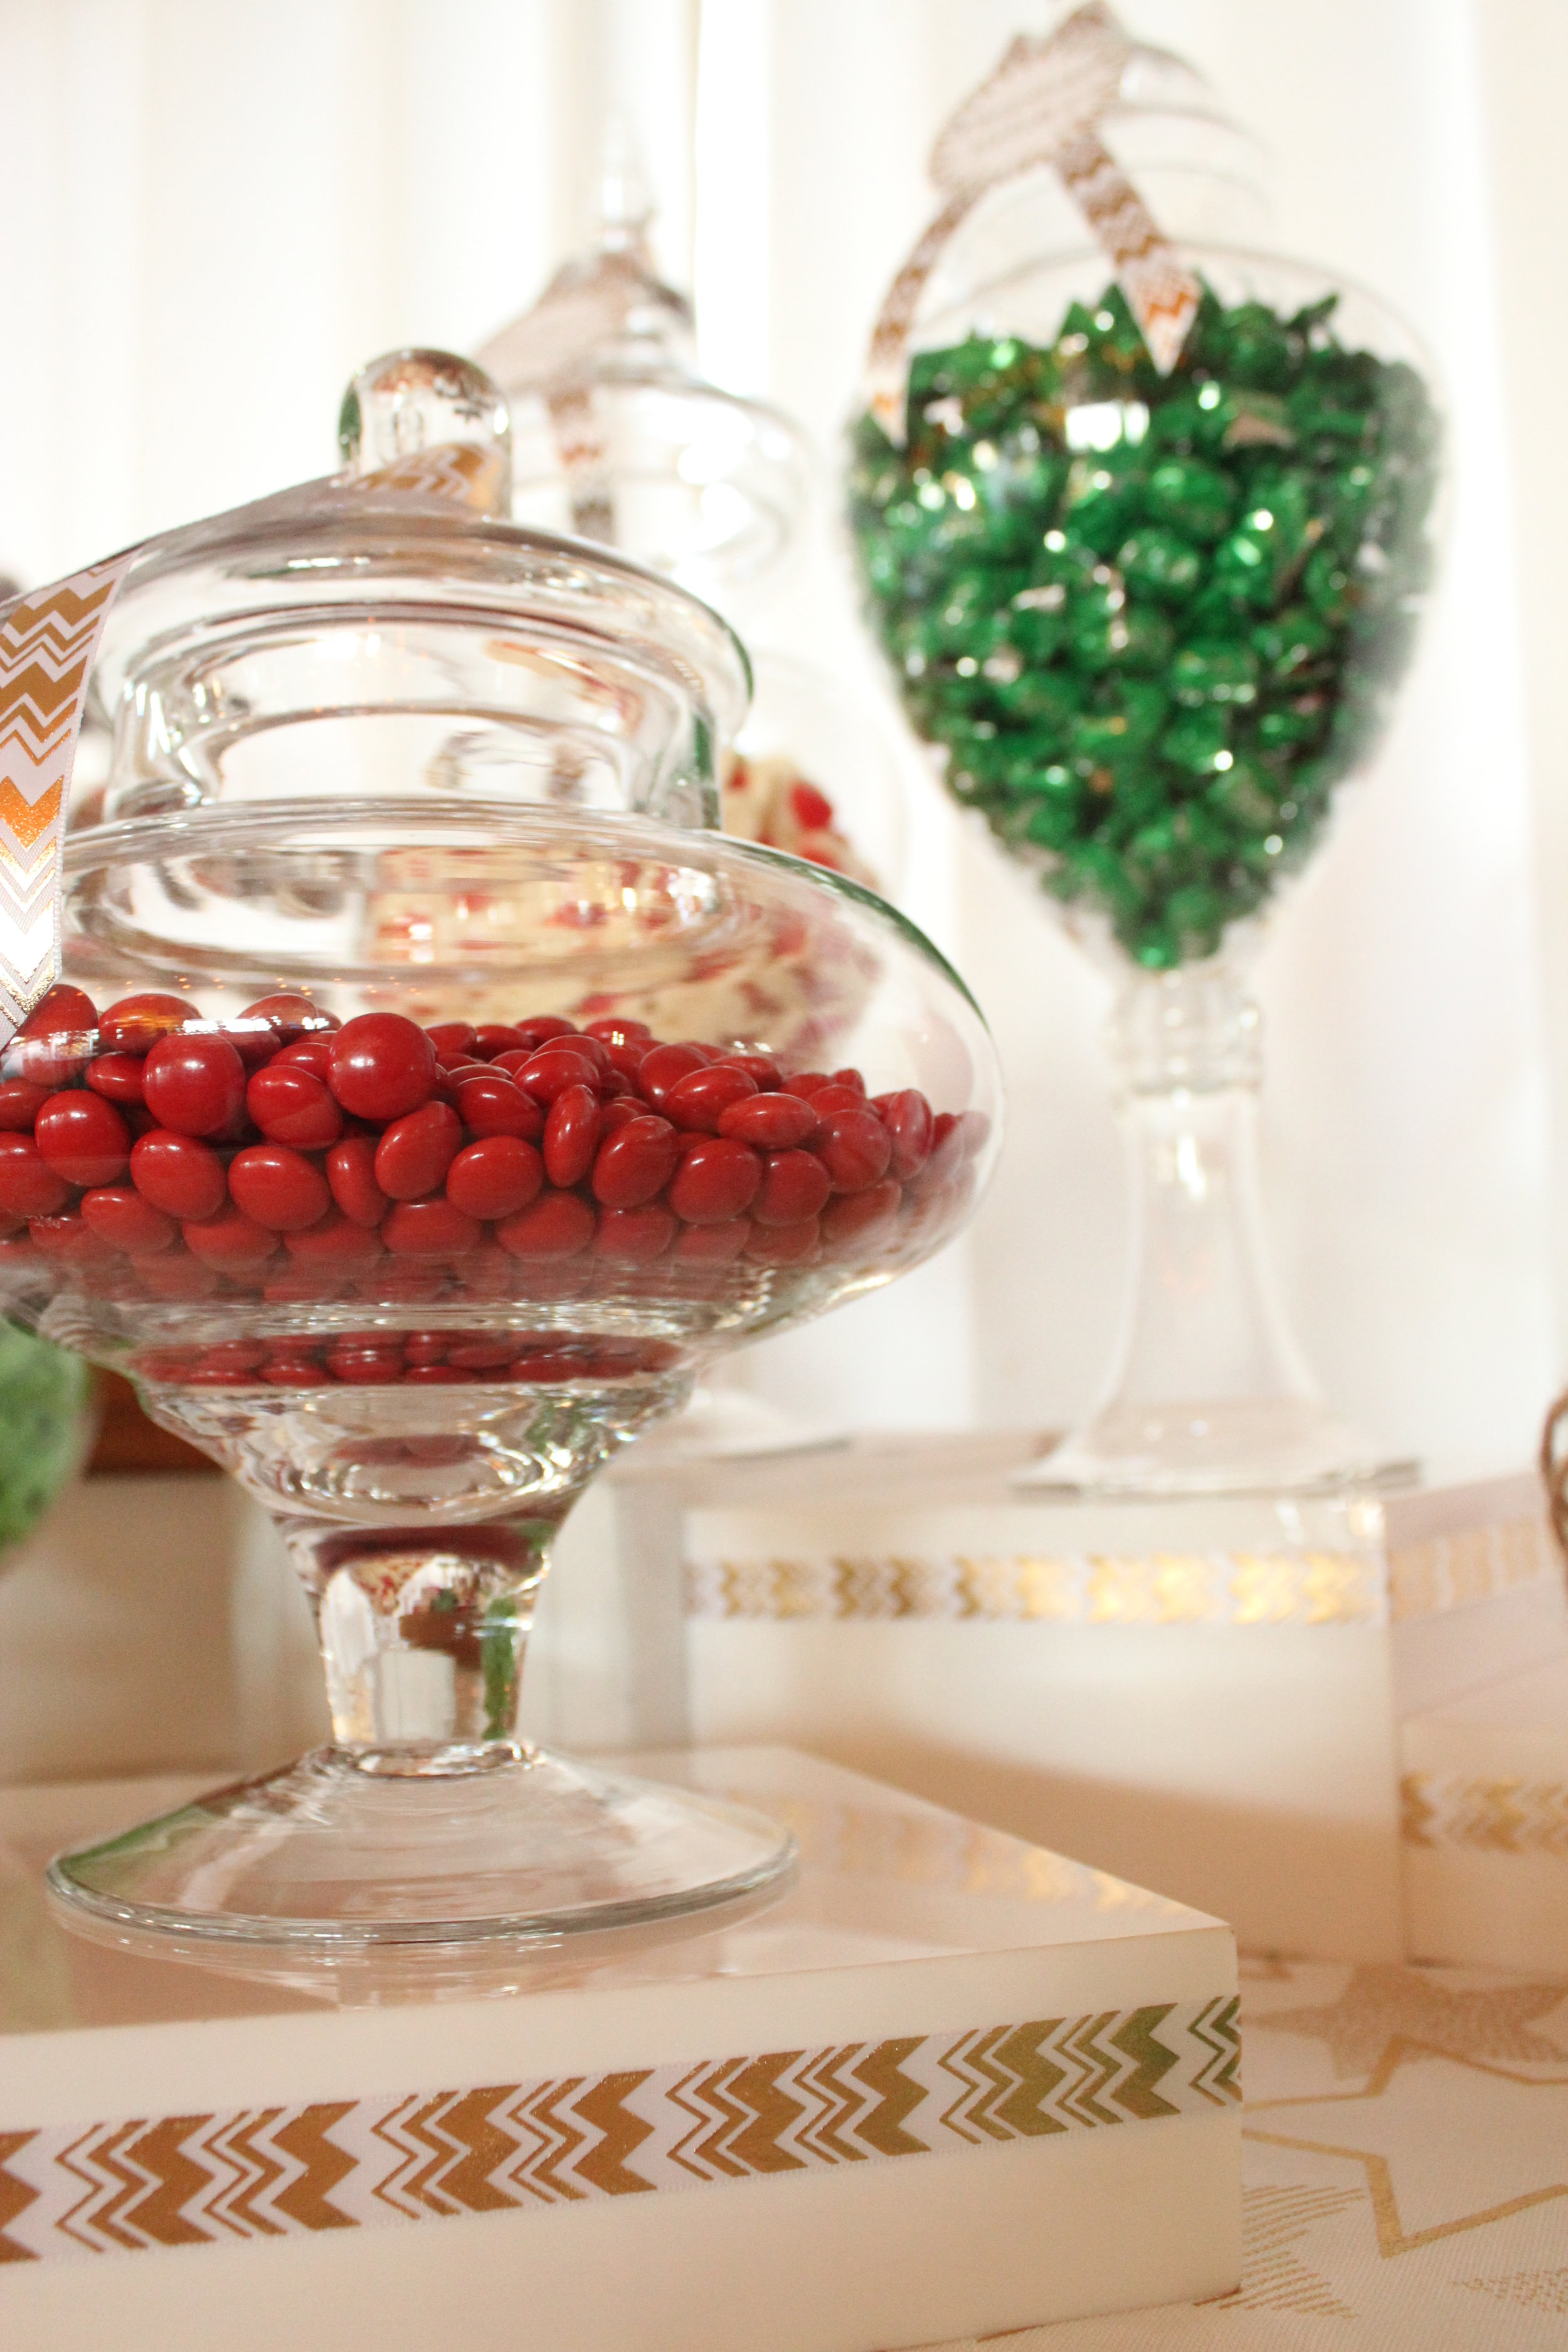 Christmas Candy Bar - Red, Green, White, Gold 6/11 - Choc Buttons